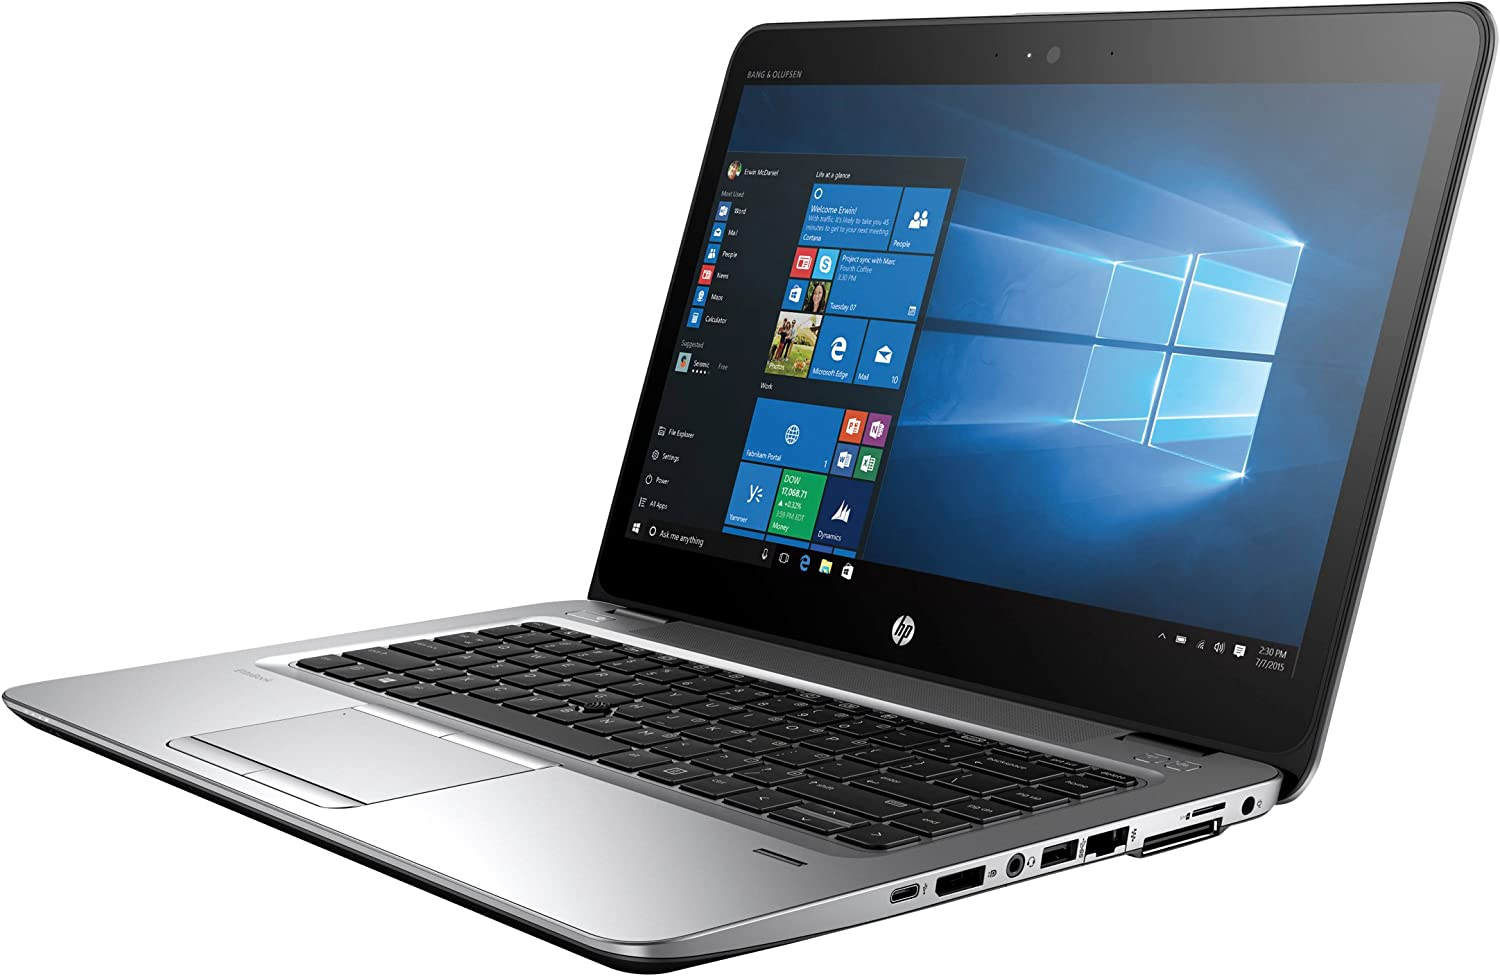 "HP Elitebook 840 G3 Notebook - V1H23UT#ABA (14"" FHD Display, i5-6300U 2.4GHz, 8GB RAM, HD Webcam, Windows 7/10 Pro 64)"